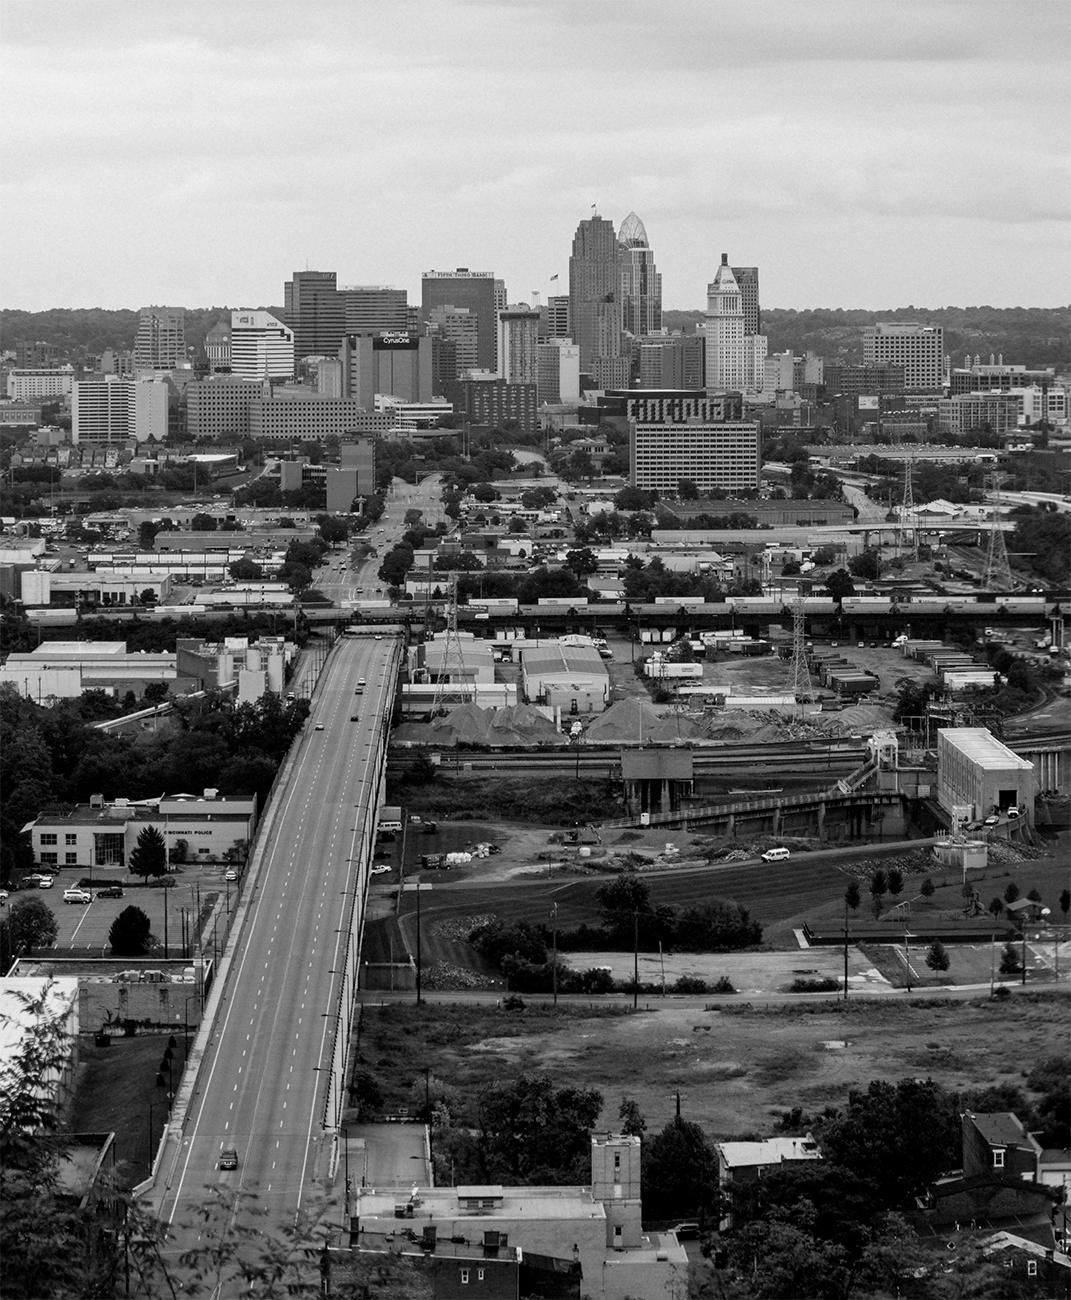 Closeup detail of a panoramic photo of Cincinnati looking east from Price Hill by Chris Glass from 2018. View the whole image by going to the Public Library downtown and seeing the Panorama of Progress exhibit. The exhibit runs until October 31. ADDRESS: 800 Vine Street (45202) / Image courtesy of the Public Library of Cincinnati // Published: 10.4.18